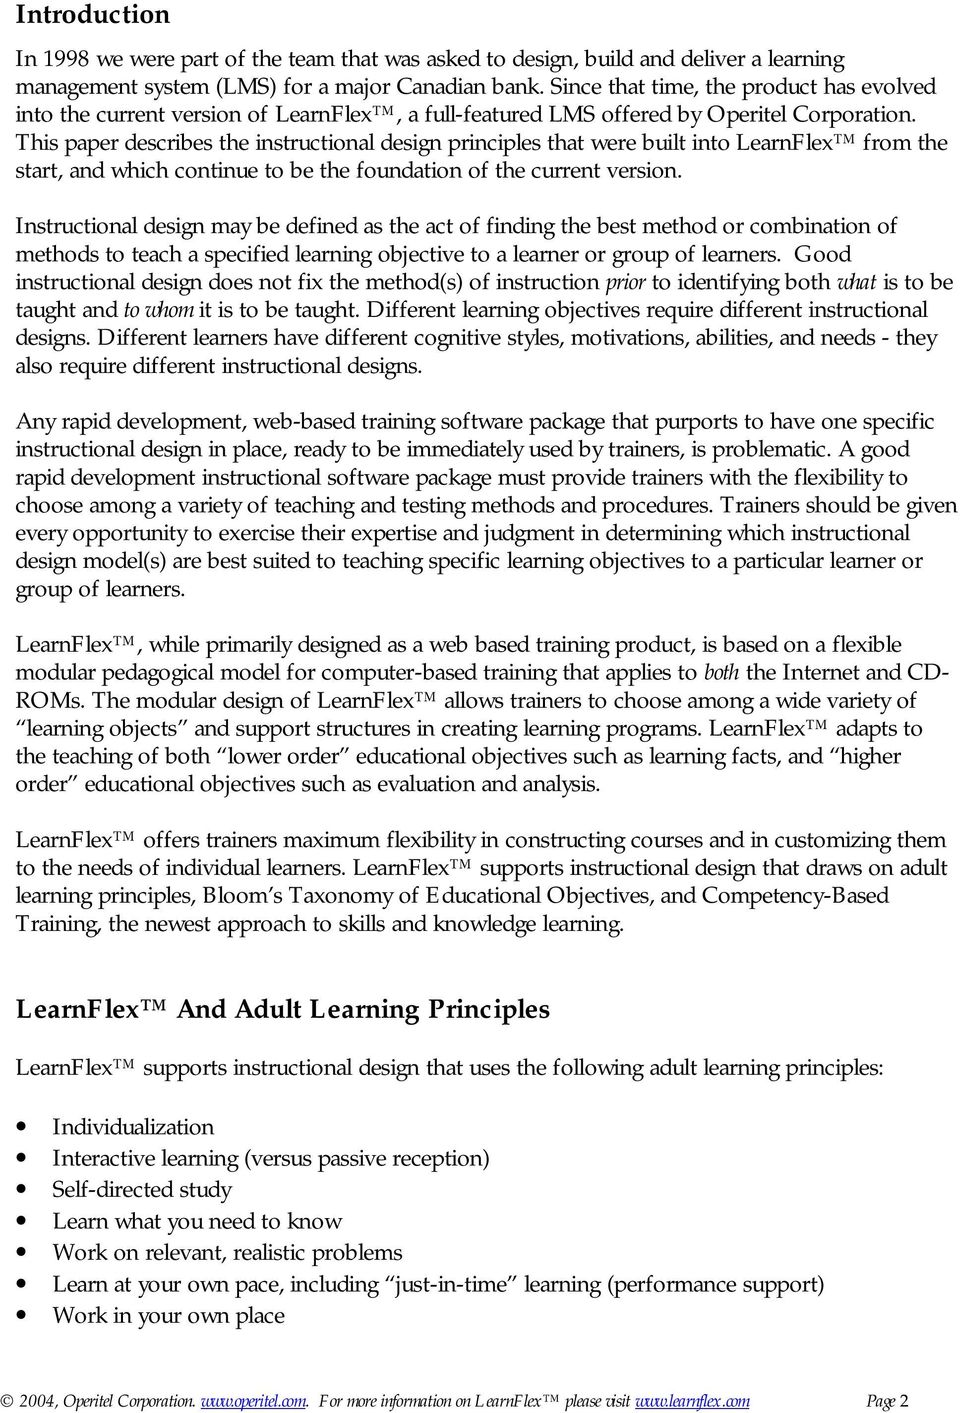 This paper describes the instructional design principles that were built into LearnFlex from the start, and which continue to be the foundation of the current version.